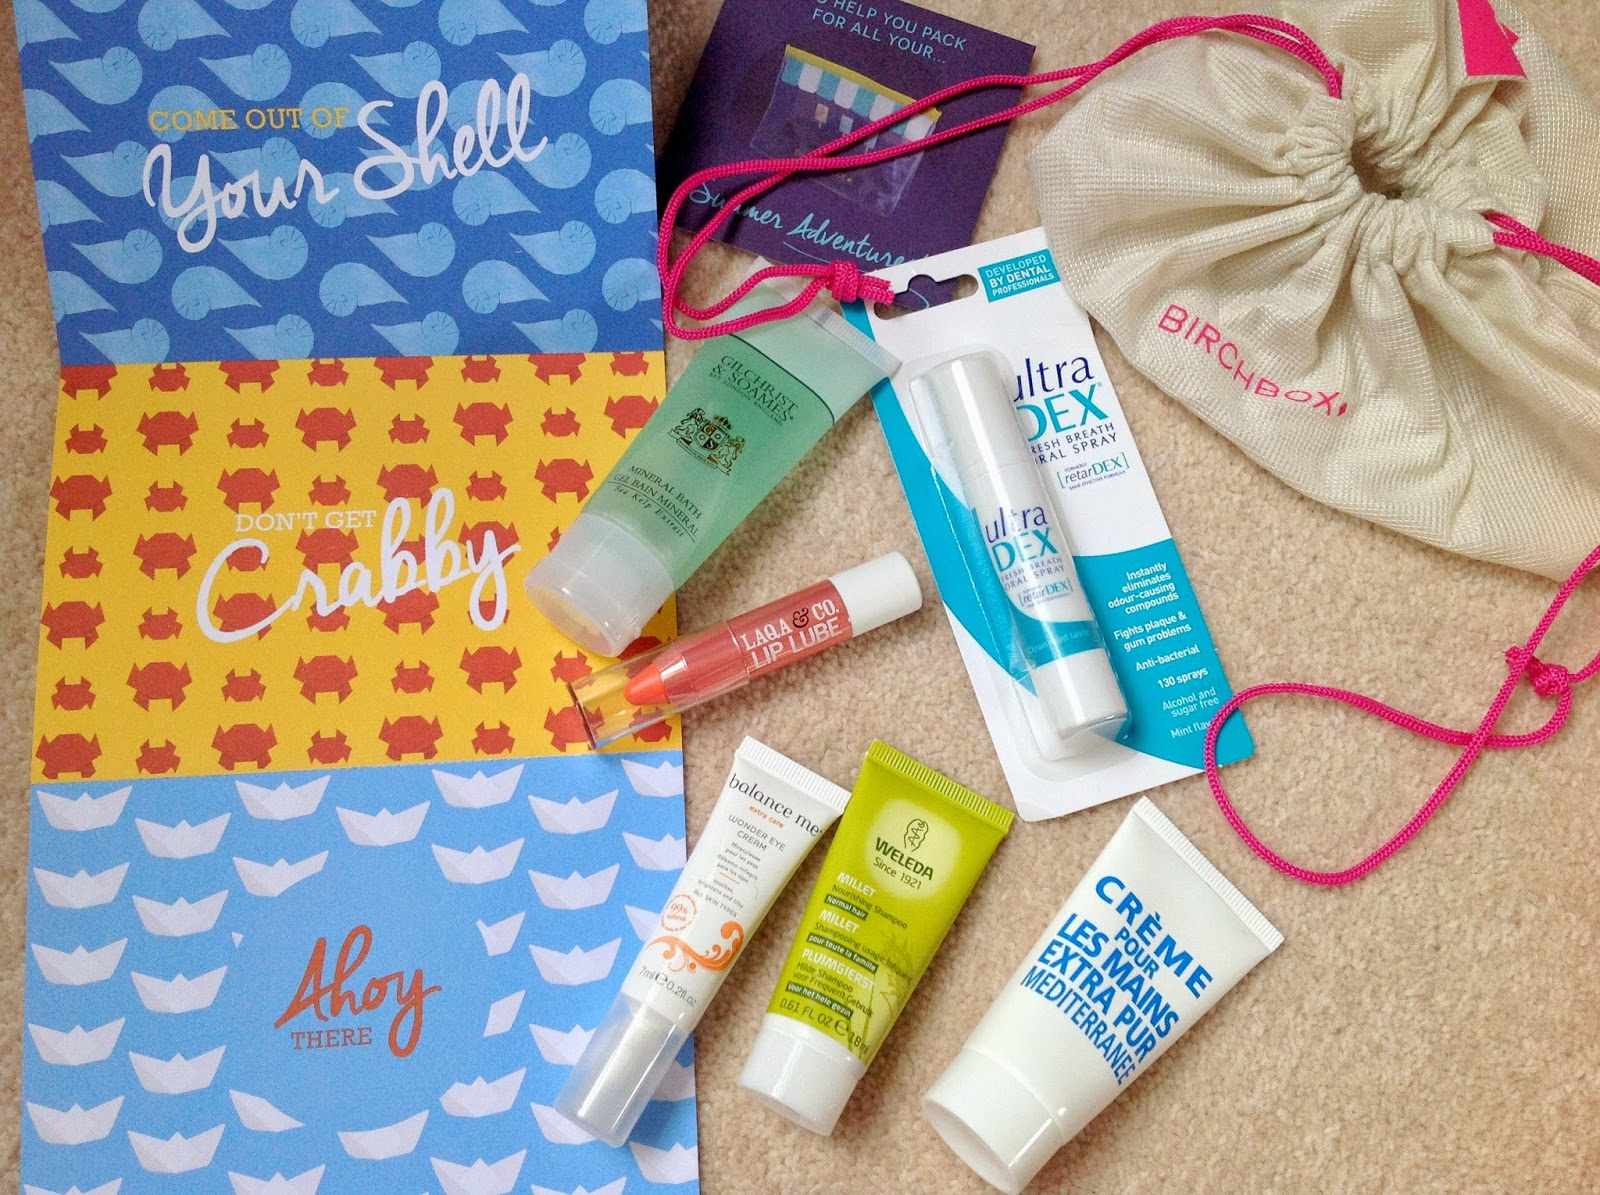 Birchbox, subscriptionbox